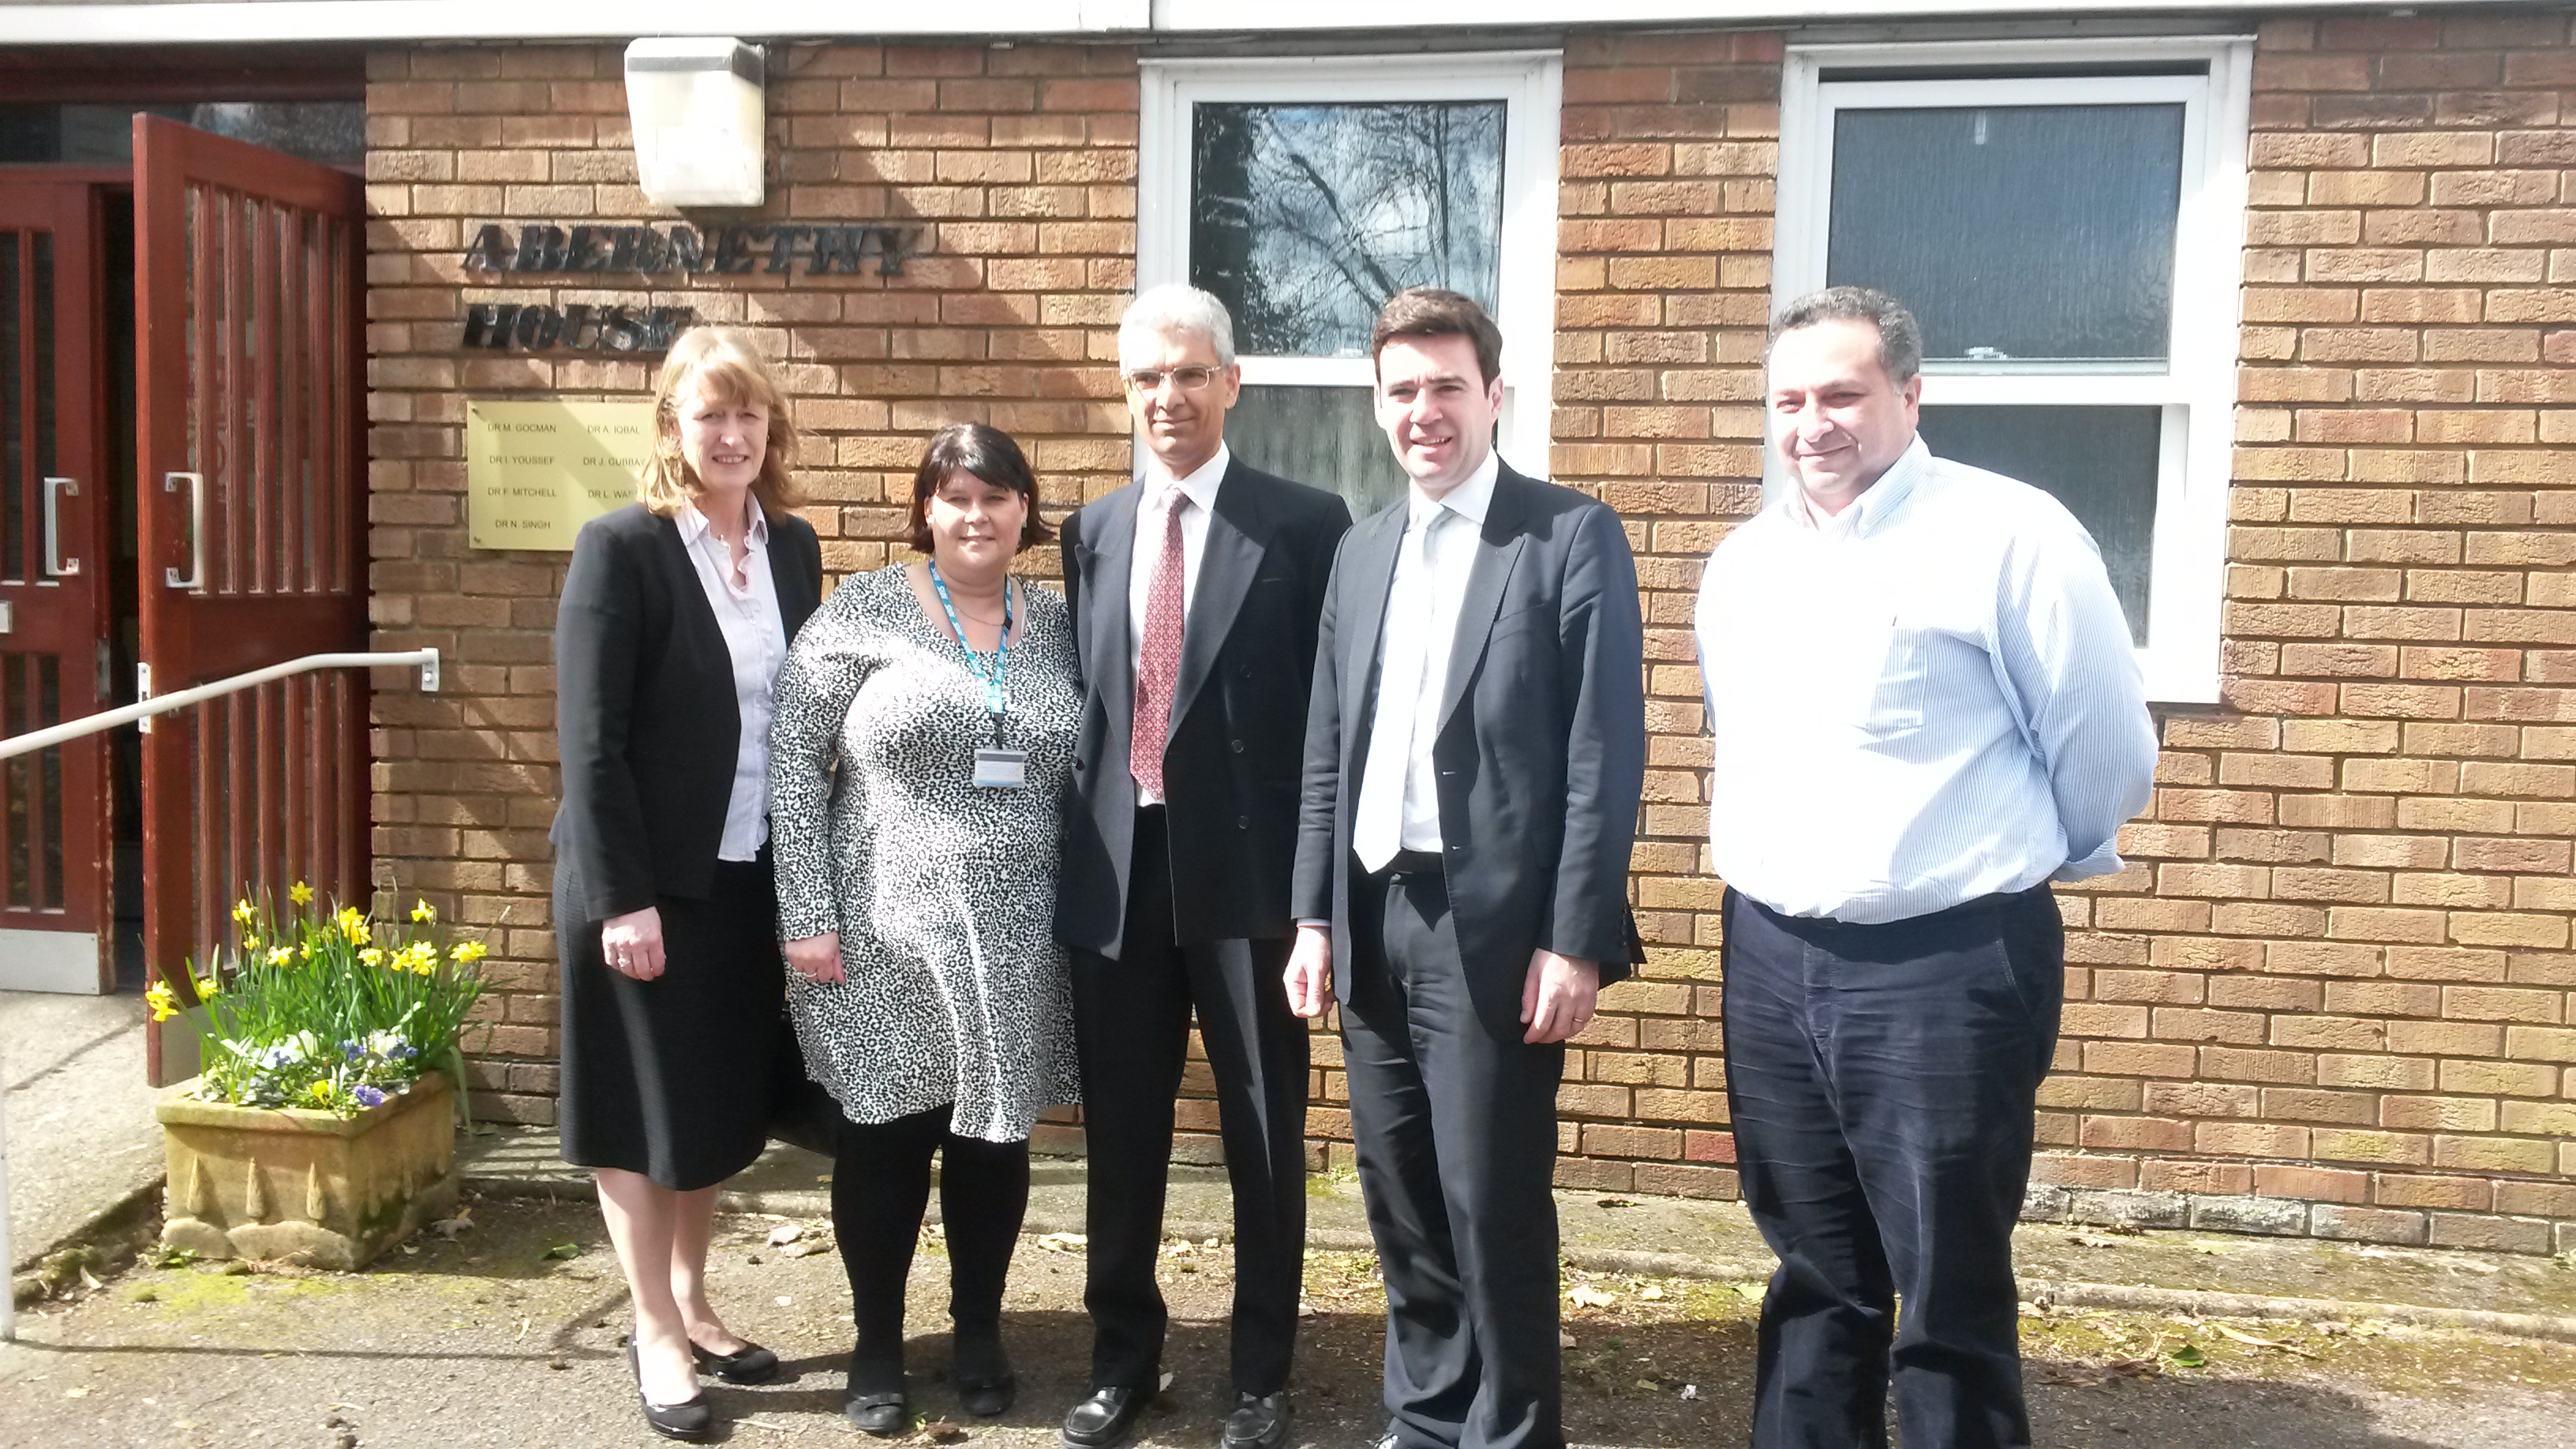 Joan Ryan, Labour candidate for Enfield North, with Andy Burnham and staff from Abernethy House GP Surgery